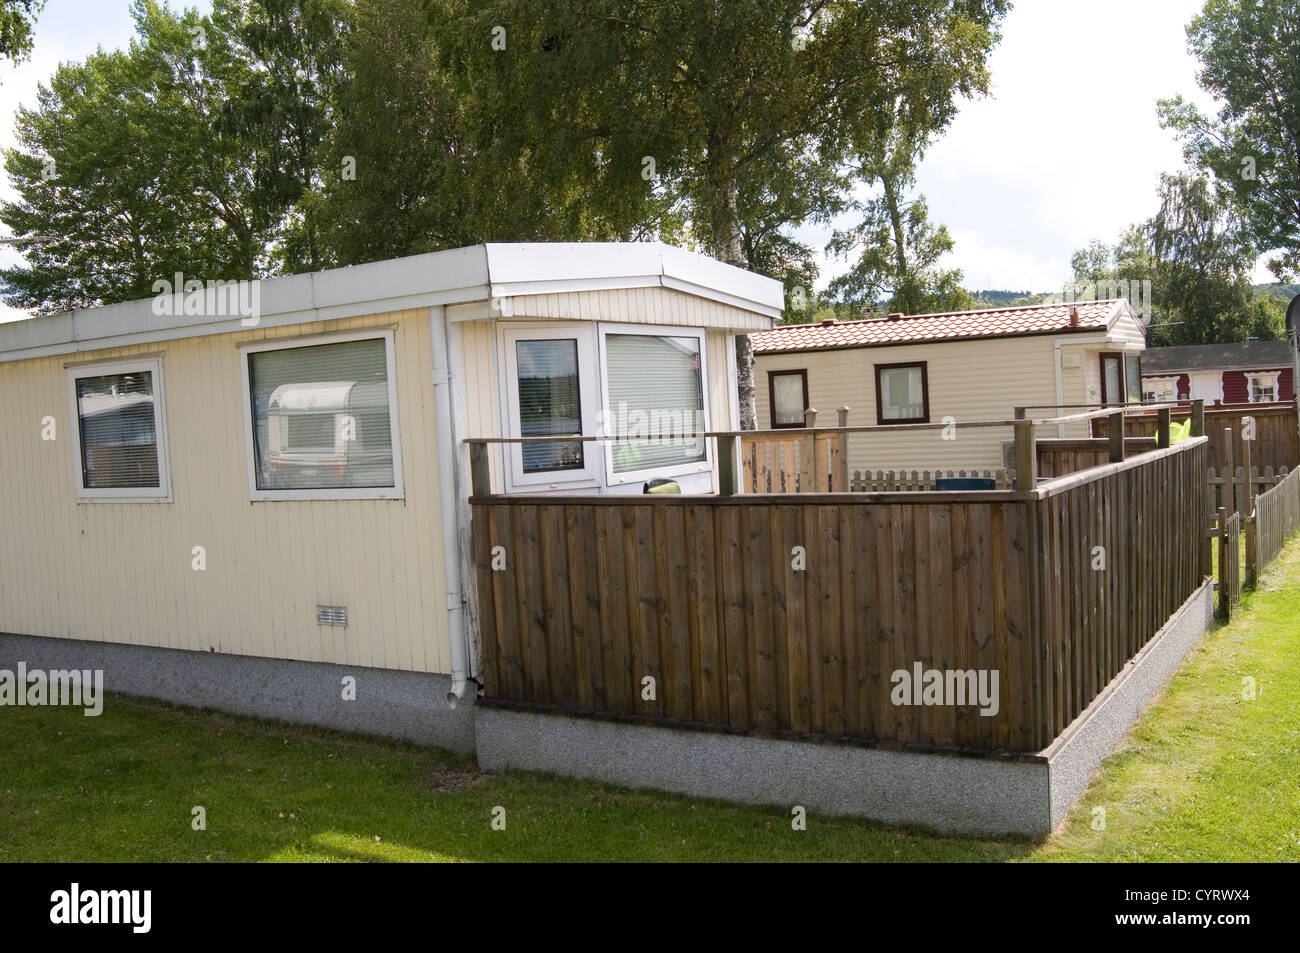 Trailer Park Parks Mobile Home Homes Trailers Or House Static